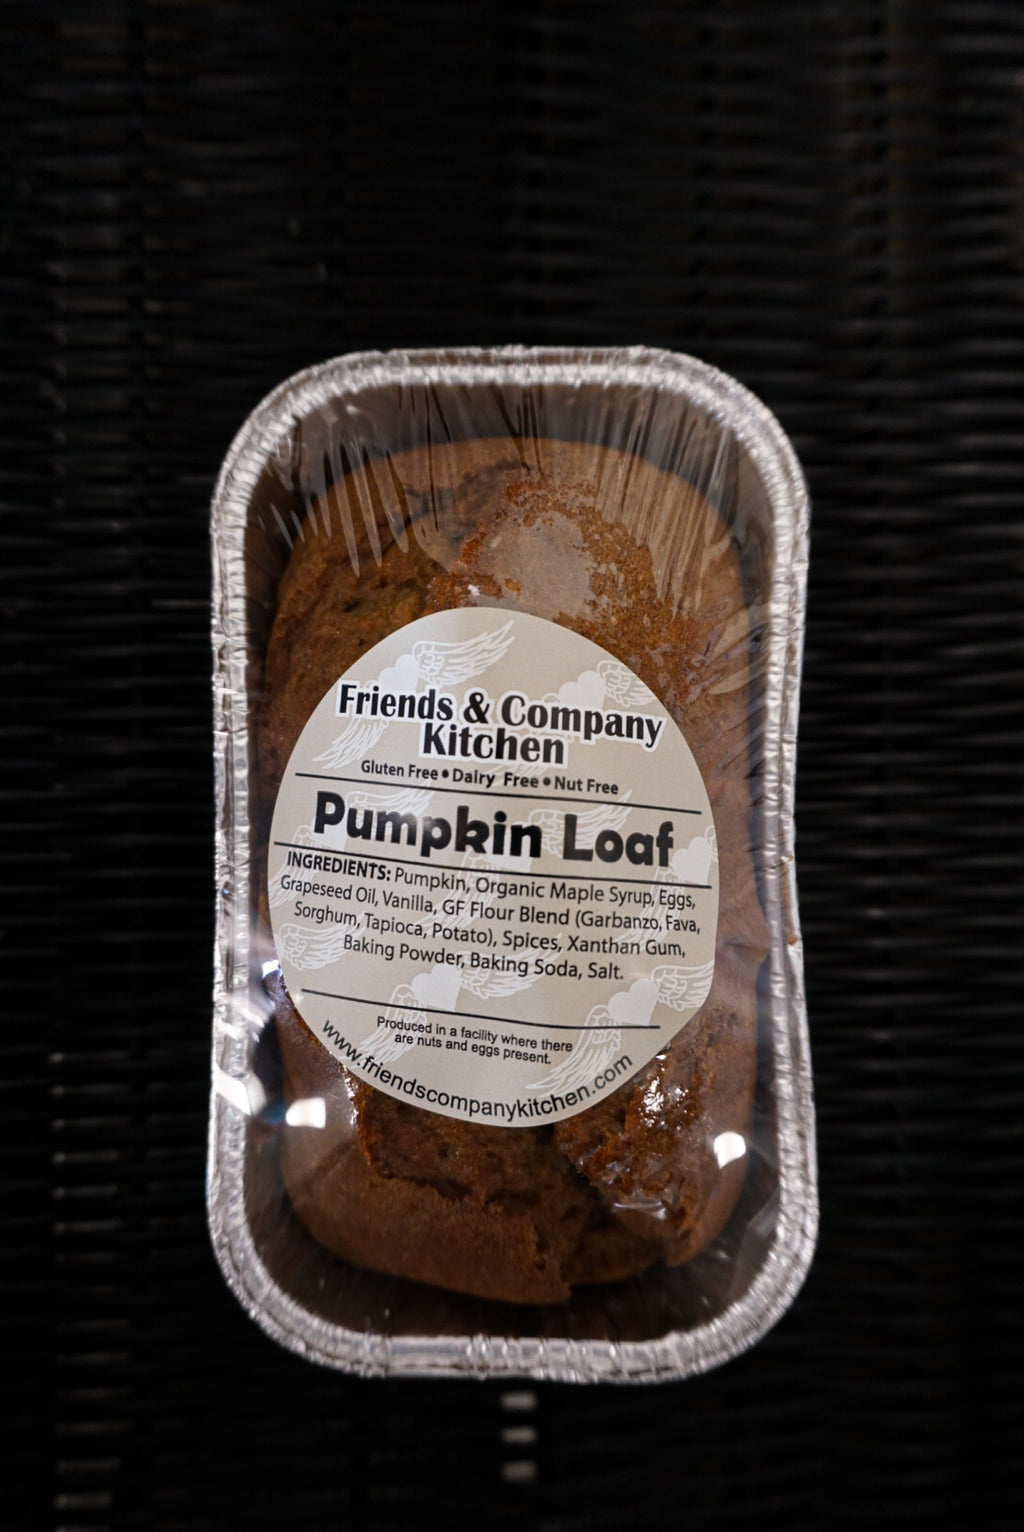 Friends & Company Pumpkin Loaf - Darien